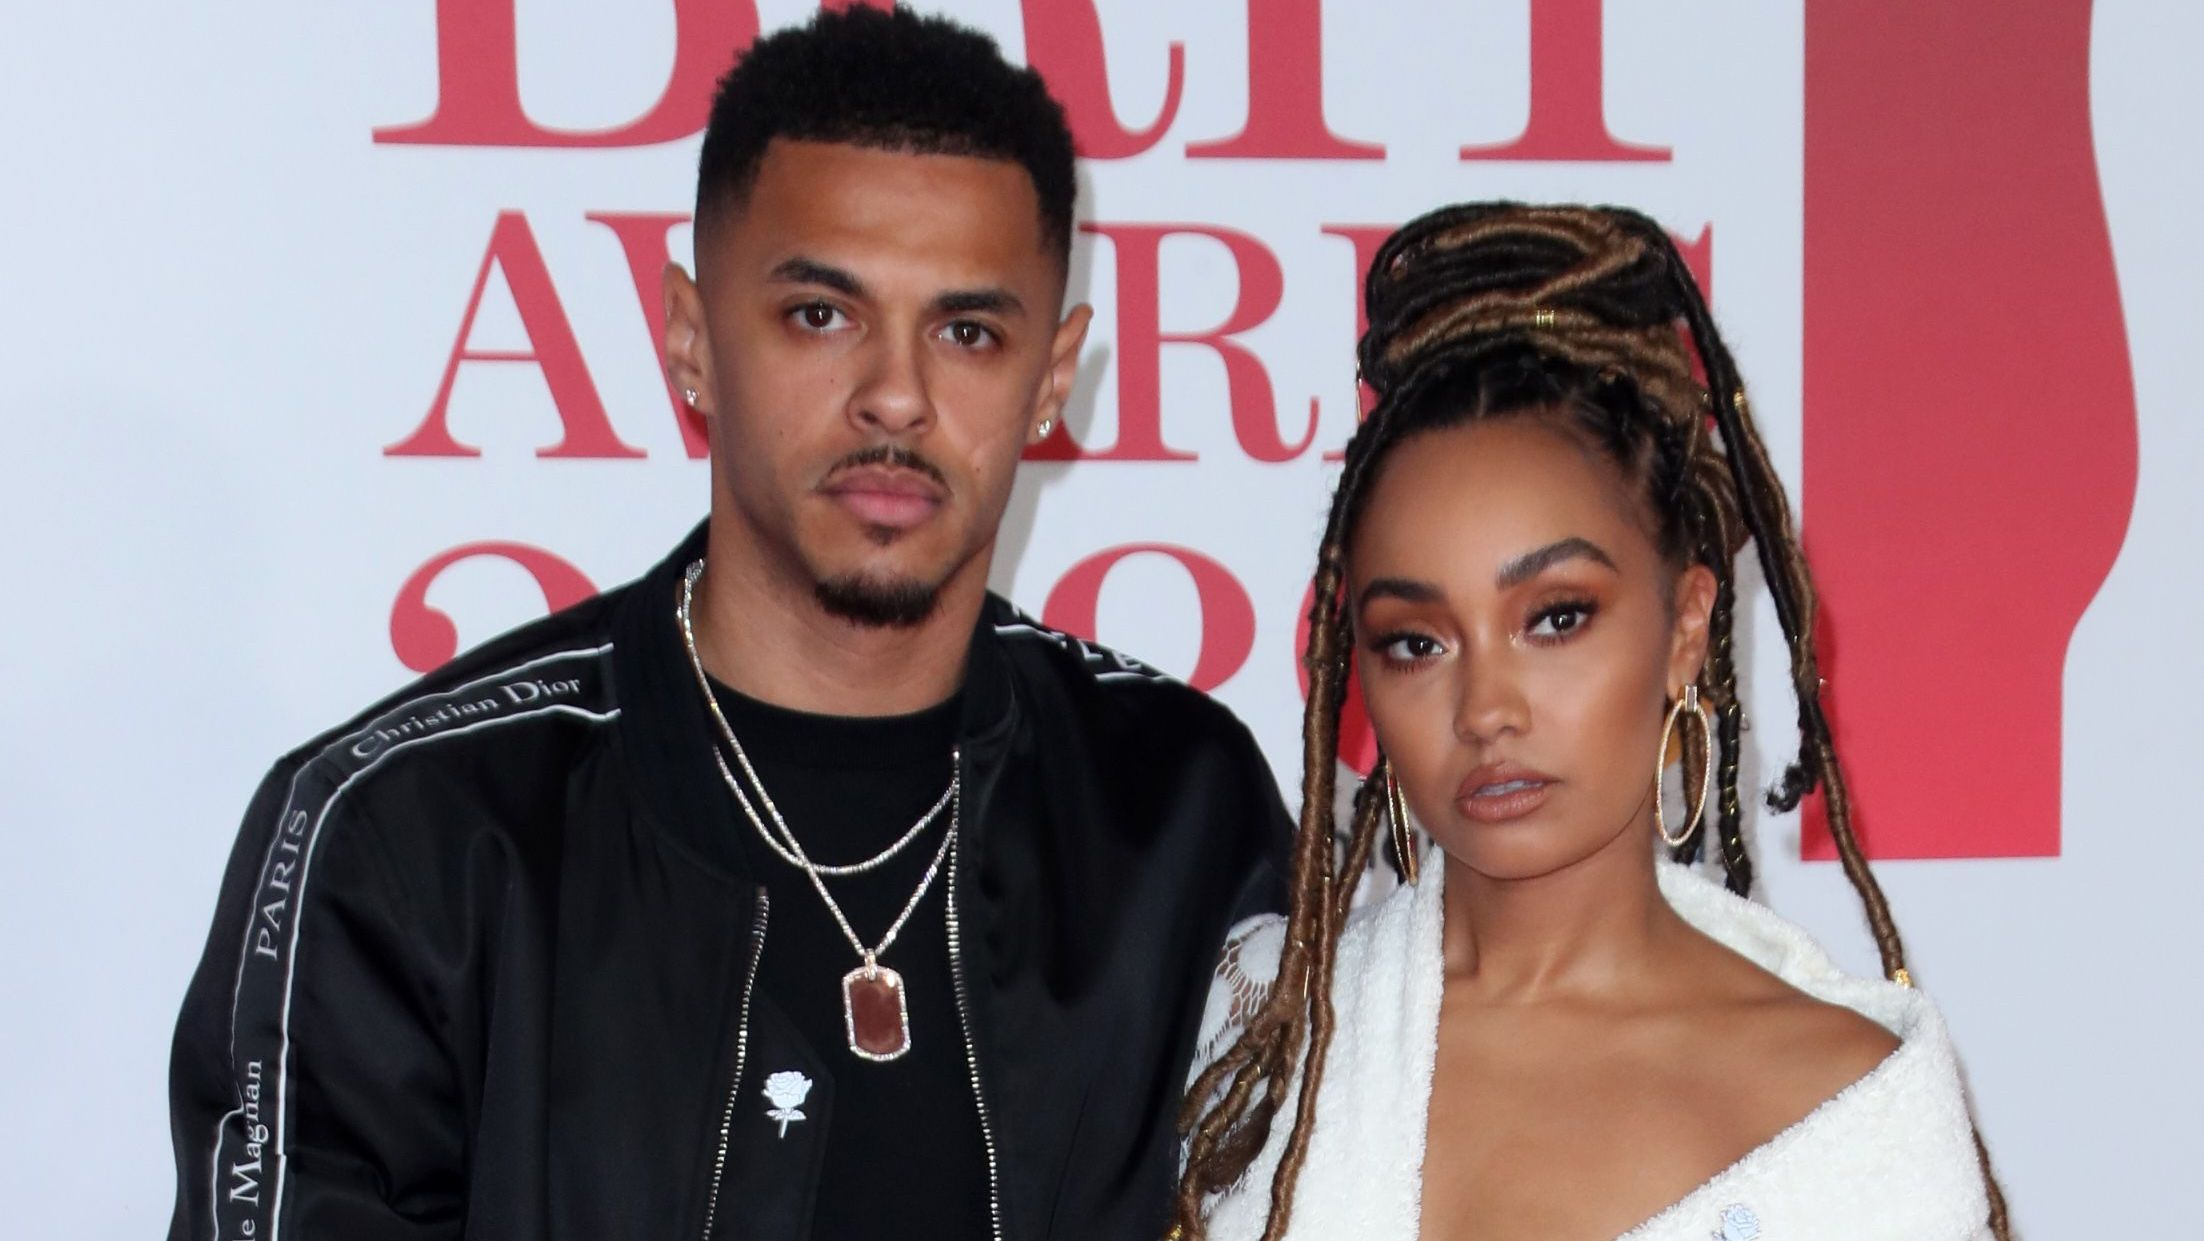 Take a look inside Leigh-Anne Pinnock's amazing home where Andre Gray proposed